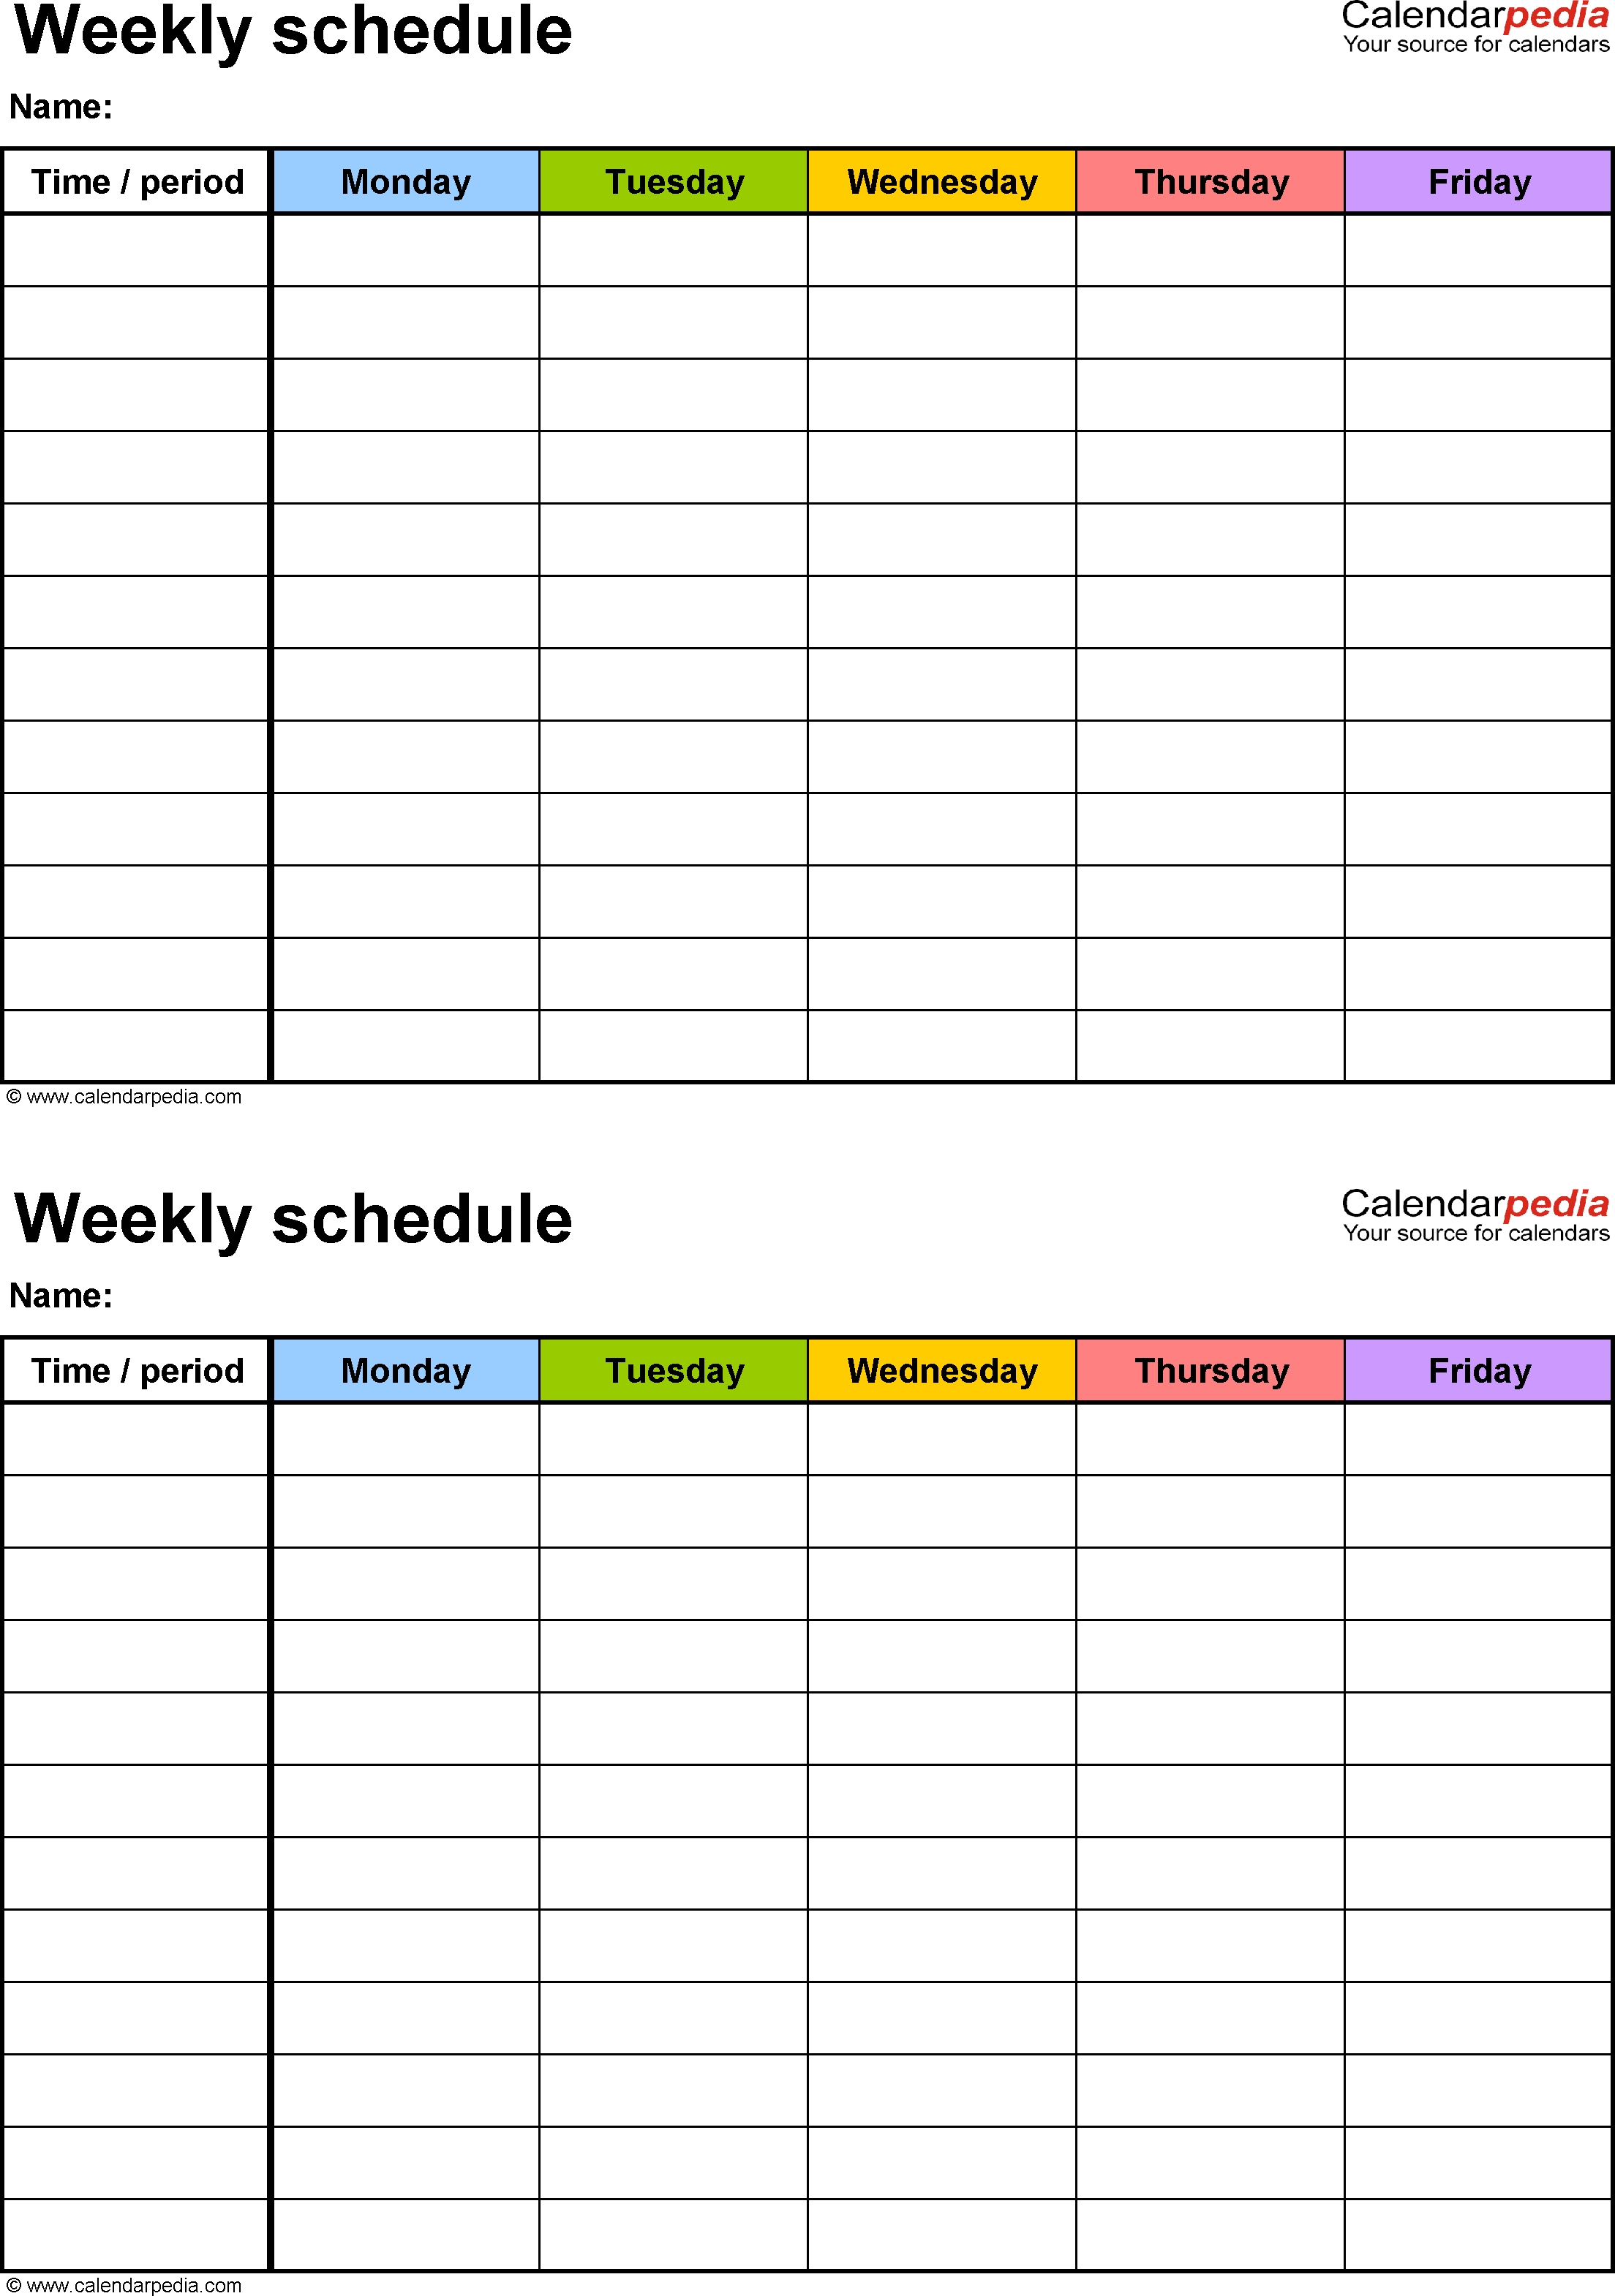 Free Weekly Schedule Templates For Pdf - 18 Templates throughout Single Week Planner Page Monday-Friday